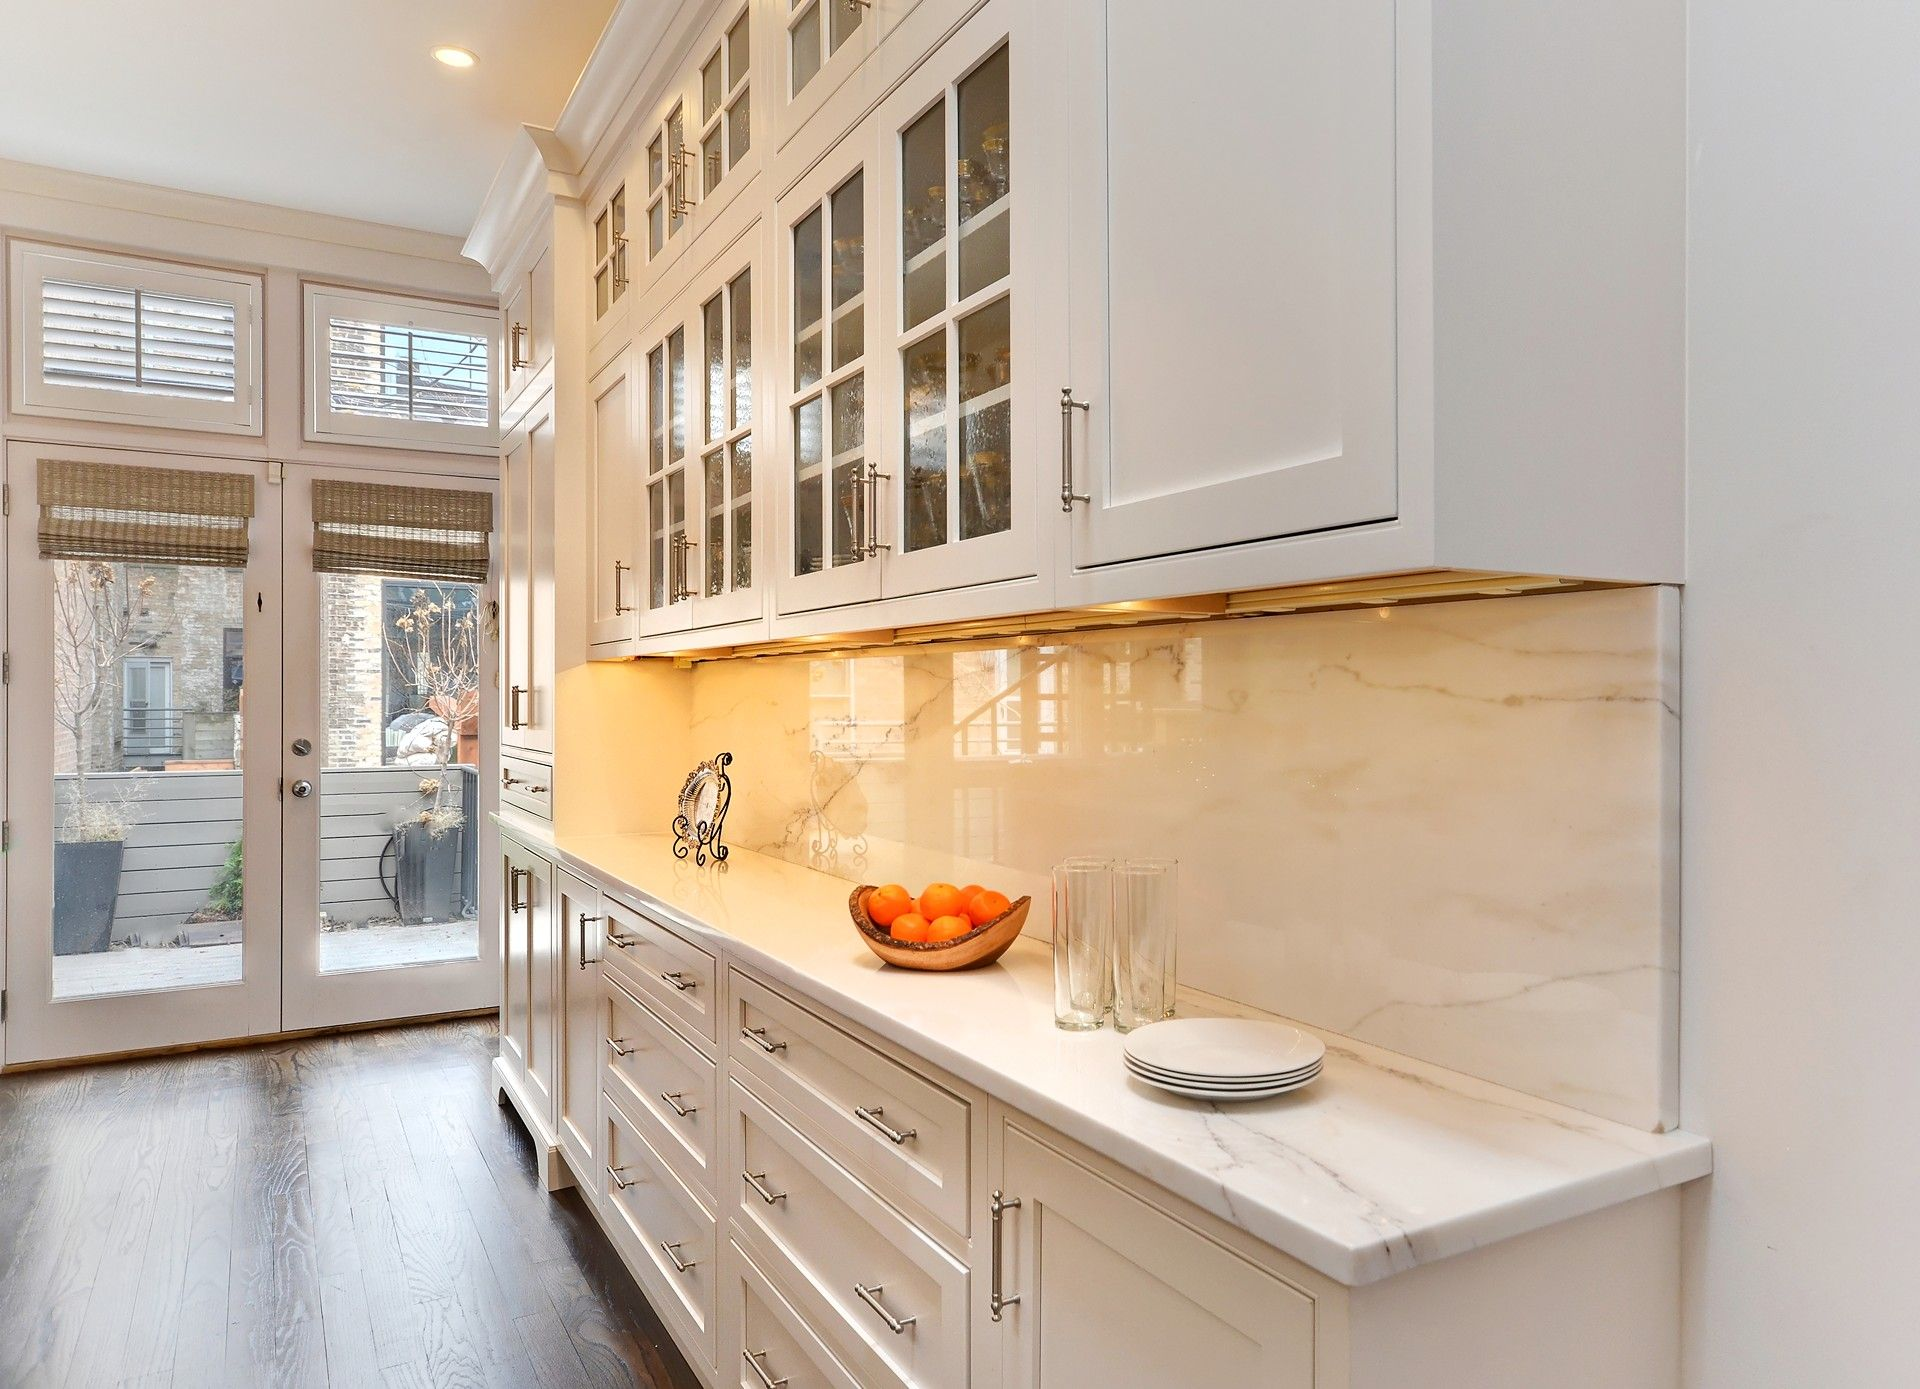 A kitchen in Chicago was remodeled and taken to new heights with Fieldstone Cabinetryu0027s Geneva inset door style. This kitchen has two Fieldstone Cabinetry ... & A kitchen in Chicago was remodeled and taken to new heights with ... pezcame.com